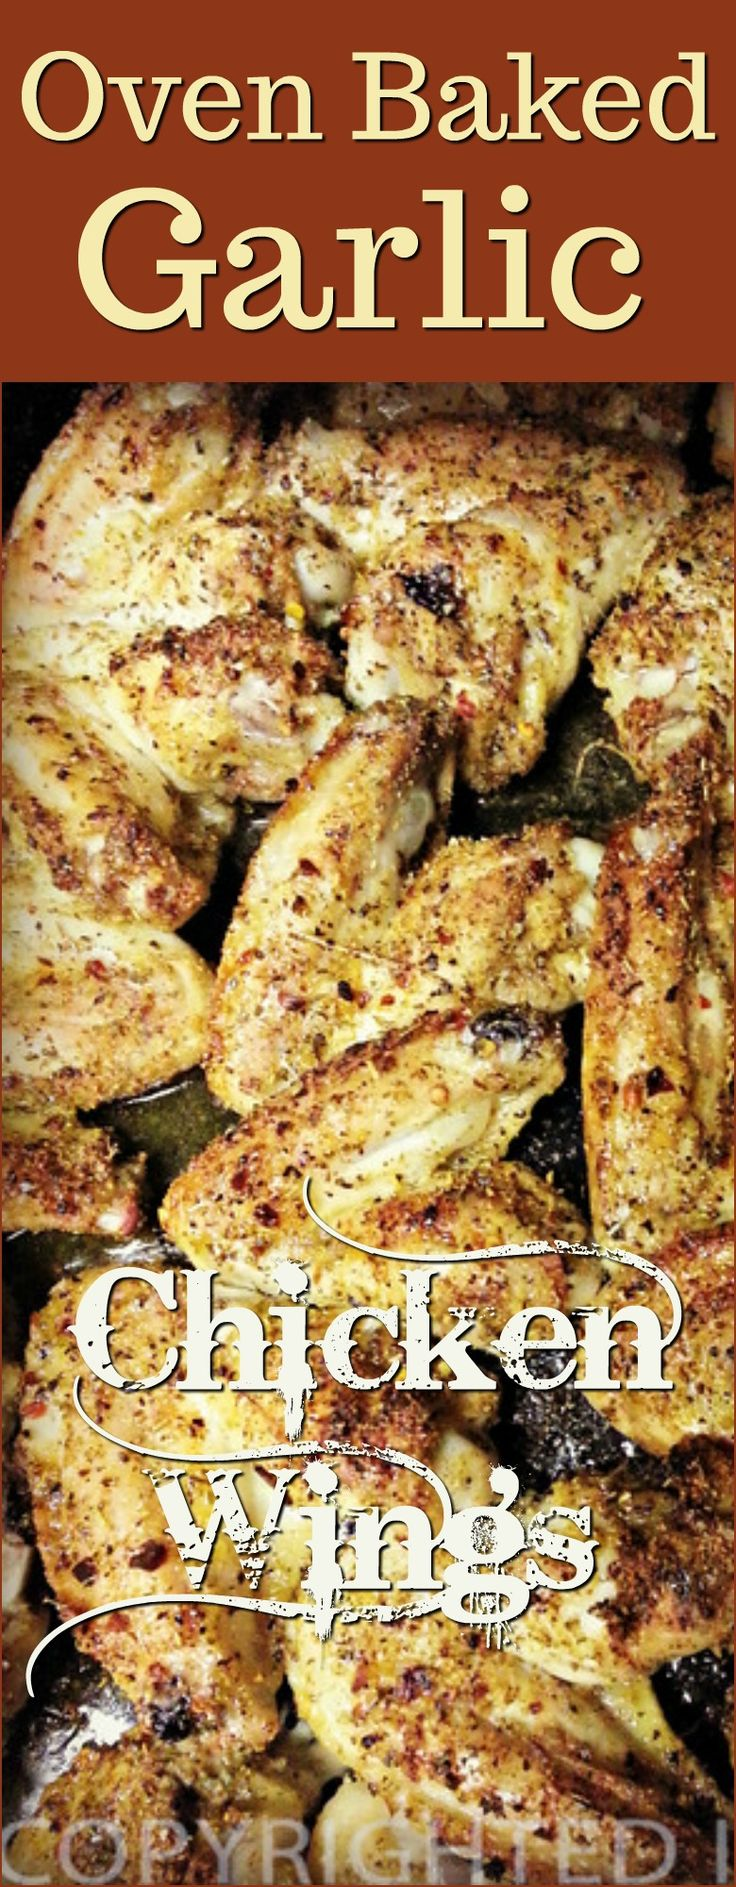 oven baked garlic chicken wings  recipe - Make this Garlic Chicken Wings #recipe  for dinner this weekend! Home made #spicy chicken wings and #potatosalad  for #dinner. Here's how we did it in under 45 minutes.